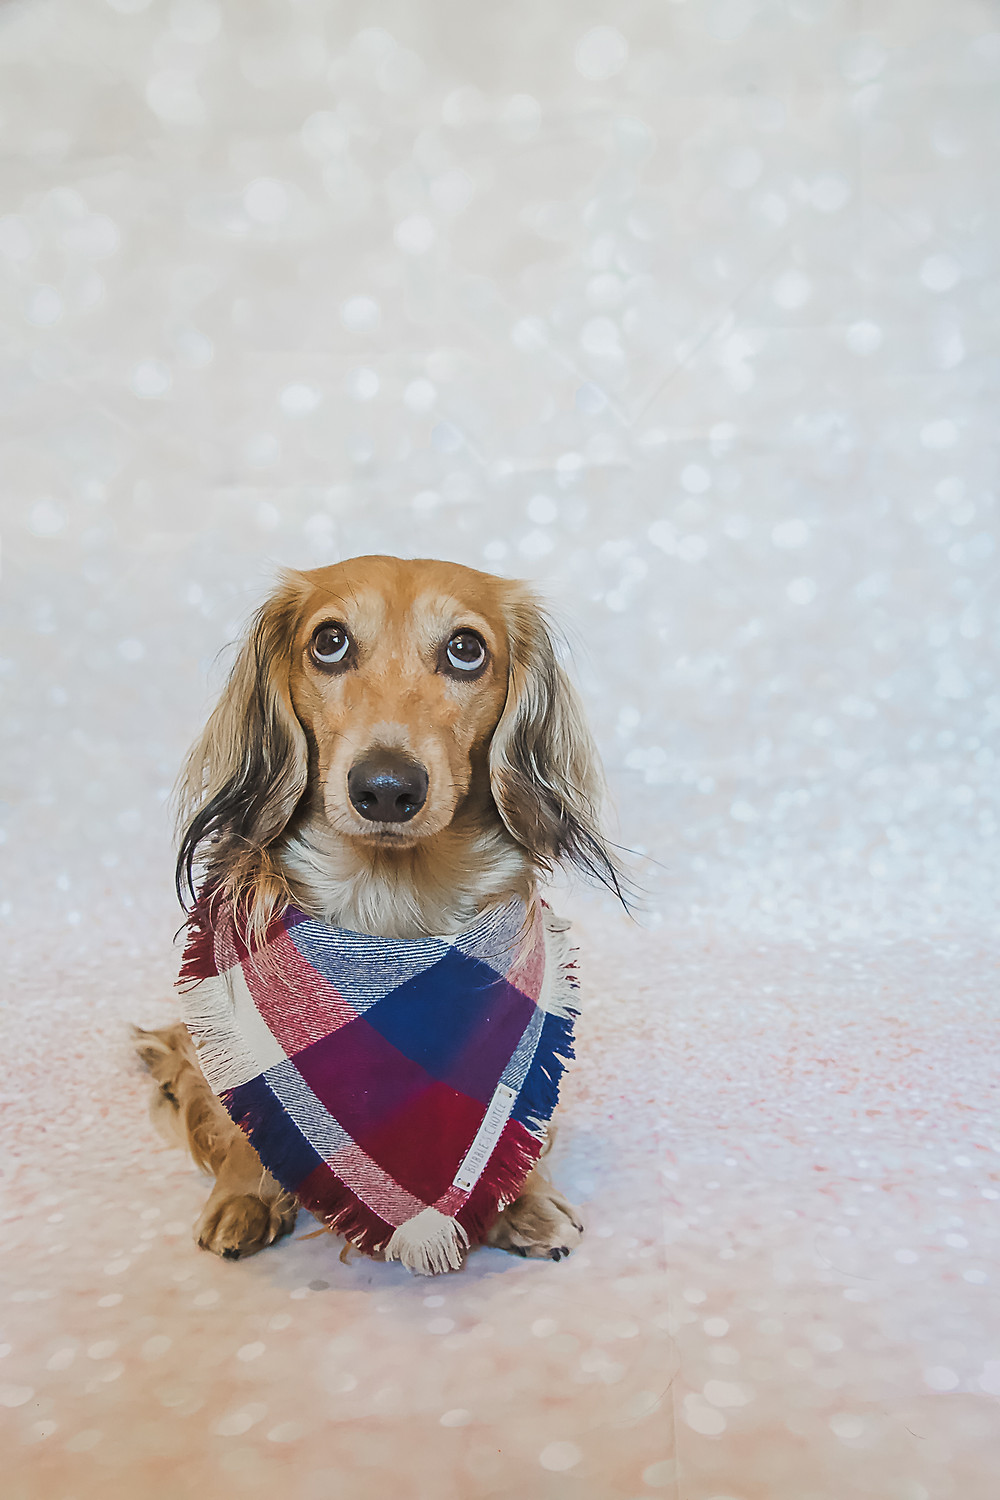 Photograph using the rule of thirds | Tips for photographing dogs